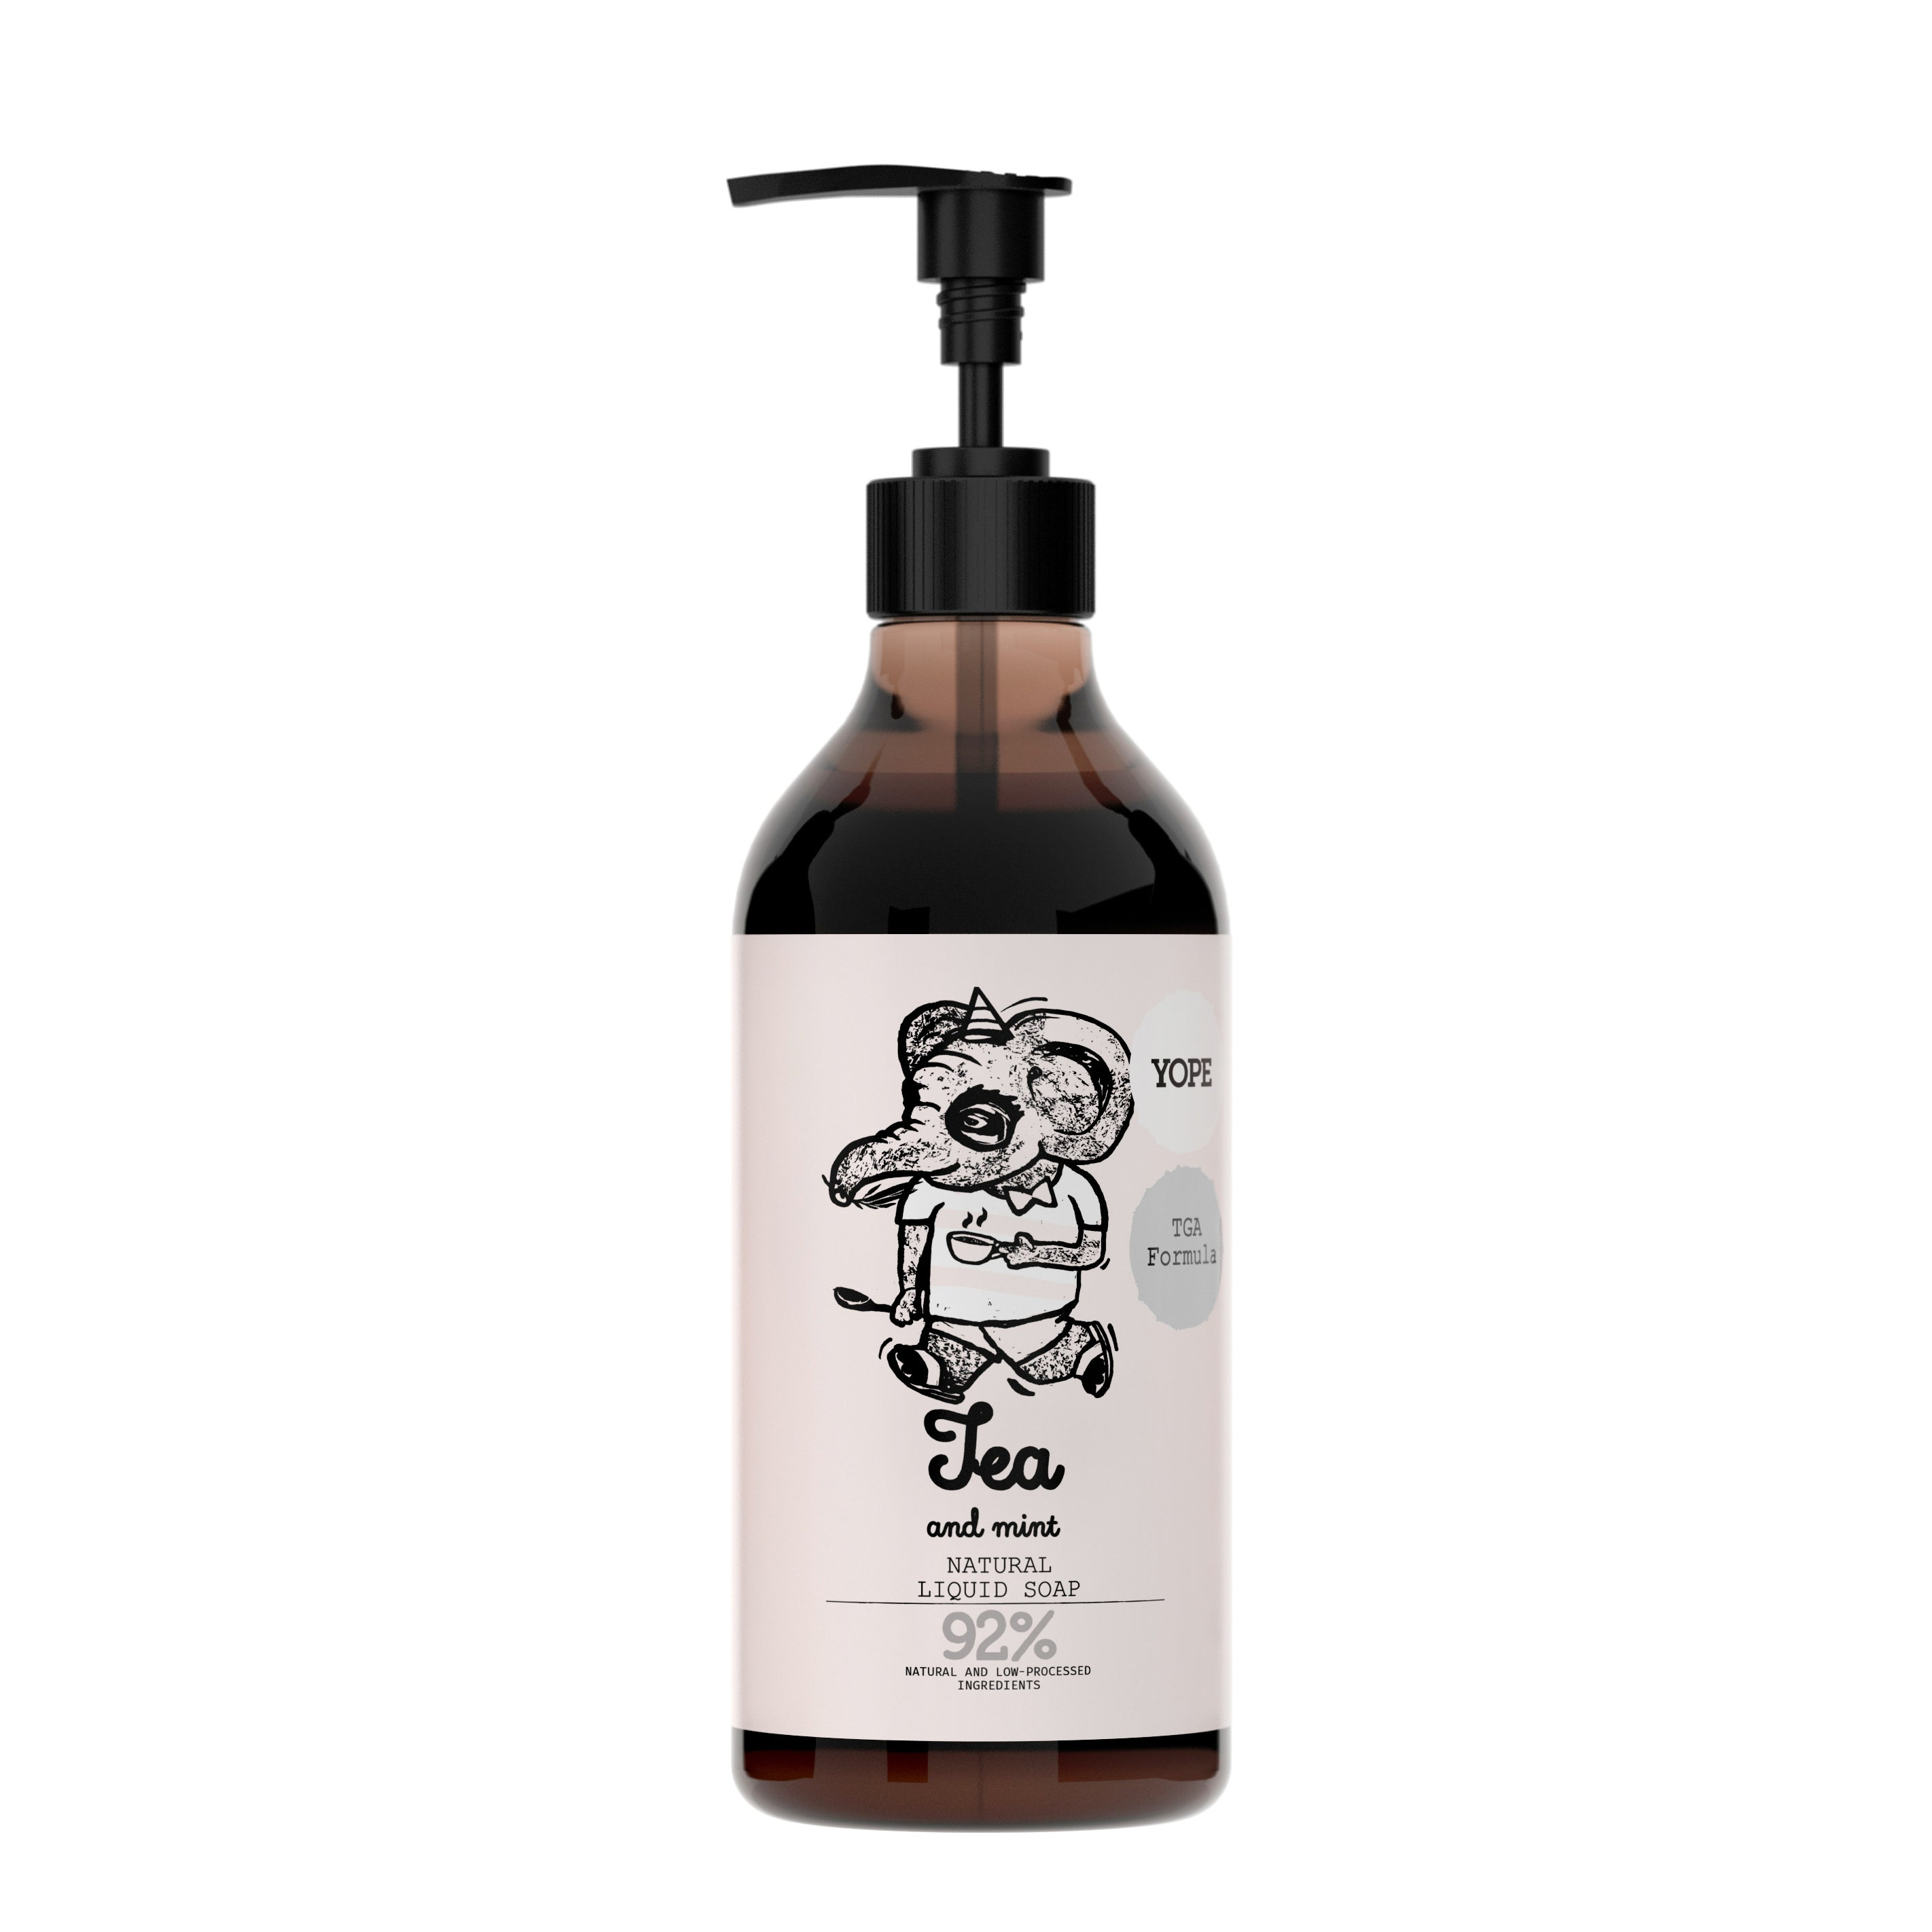 YOPE Liquid Soap with TGA Formula Tea & Peppermint / YOPE 茶丶薄荷配TGA配方洗手液 - Xavi Soap